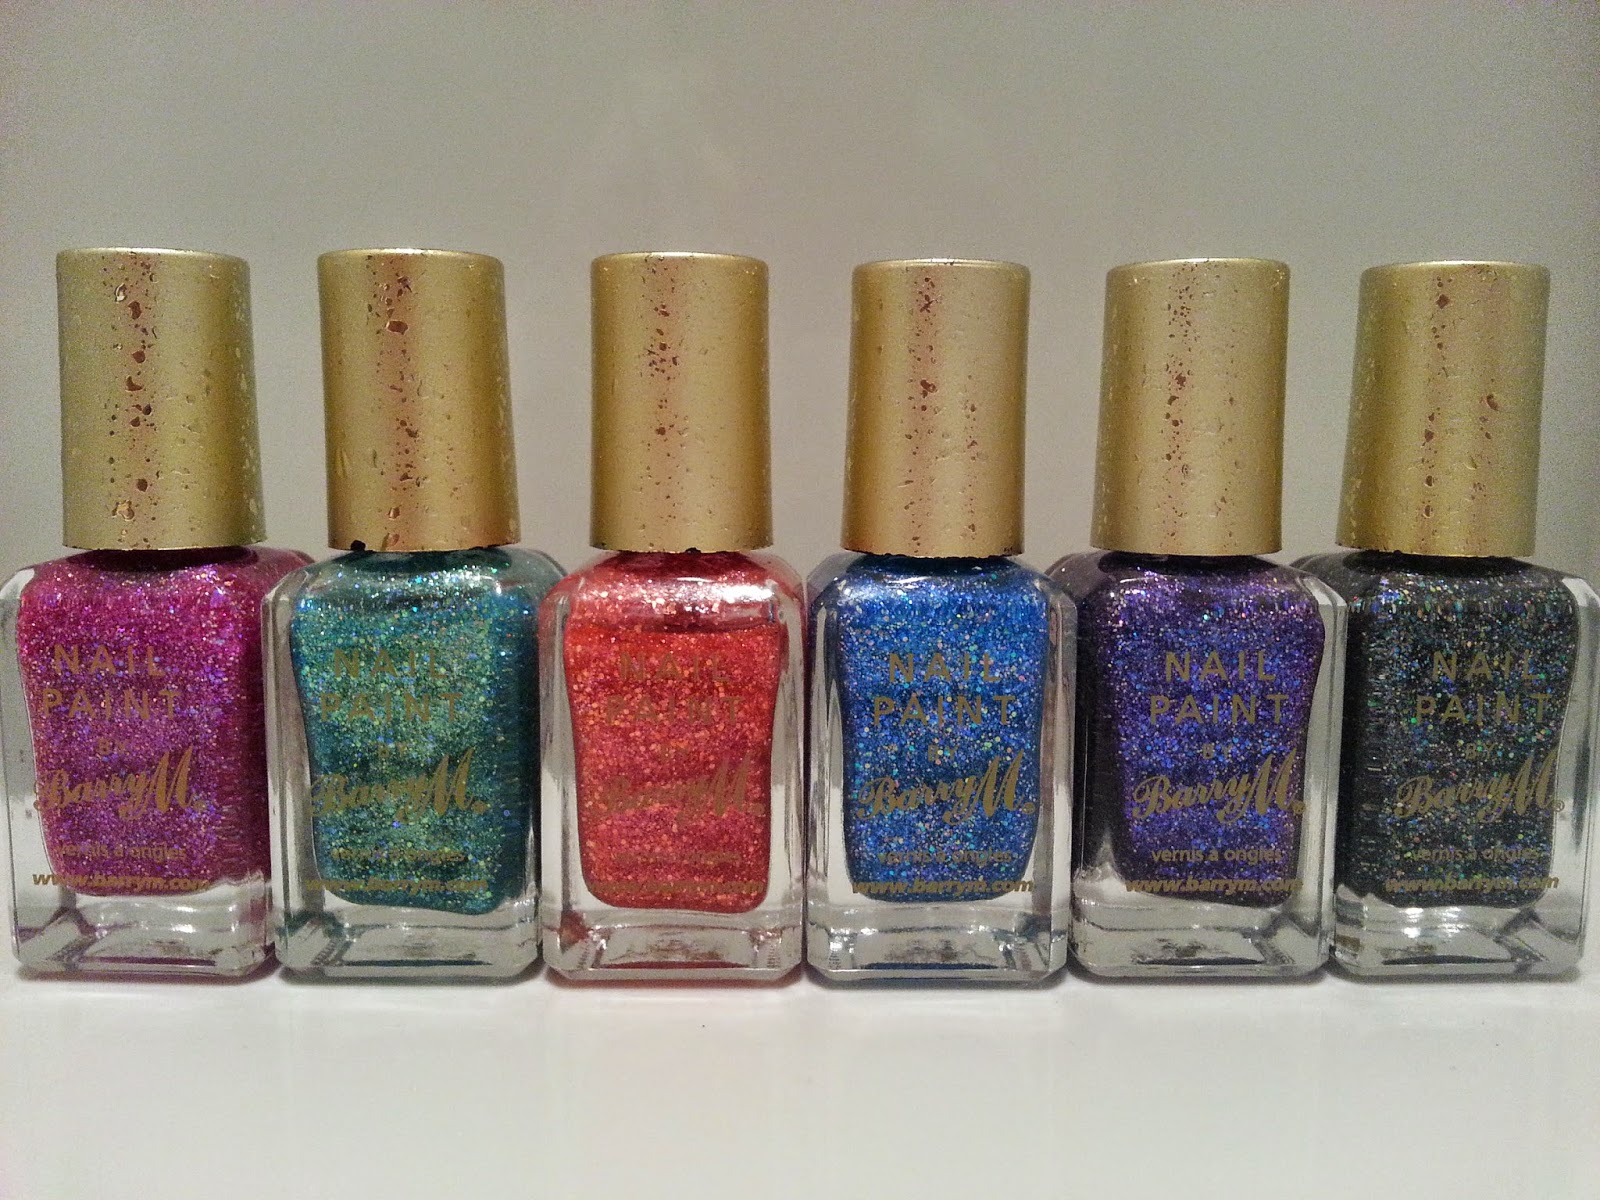 new-barry-m-glitterati-collection